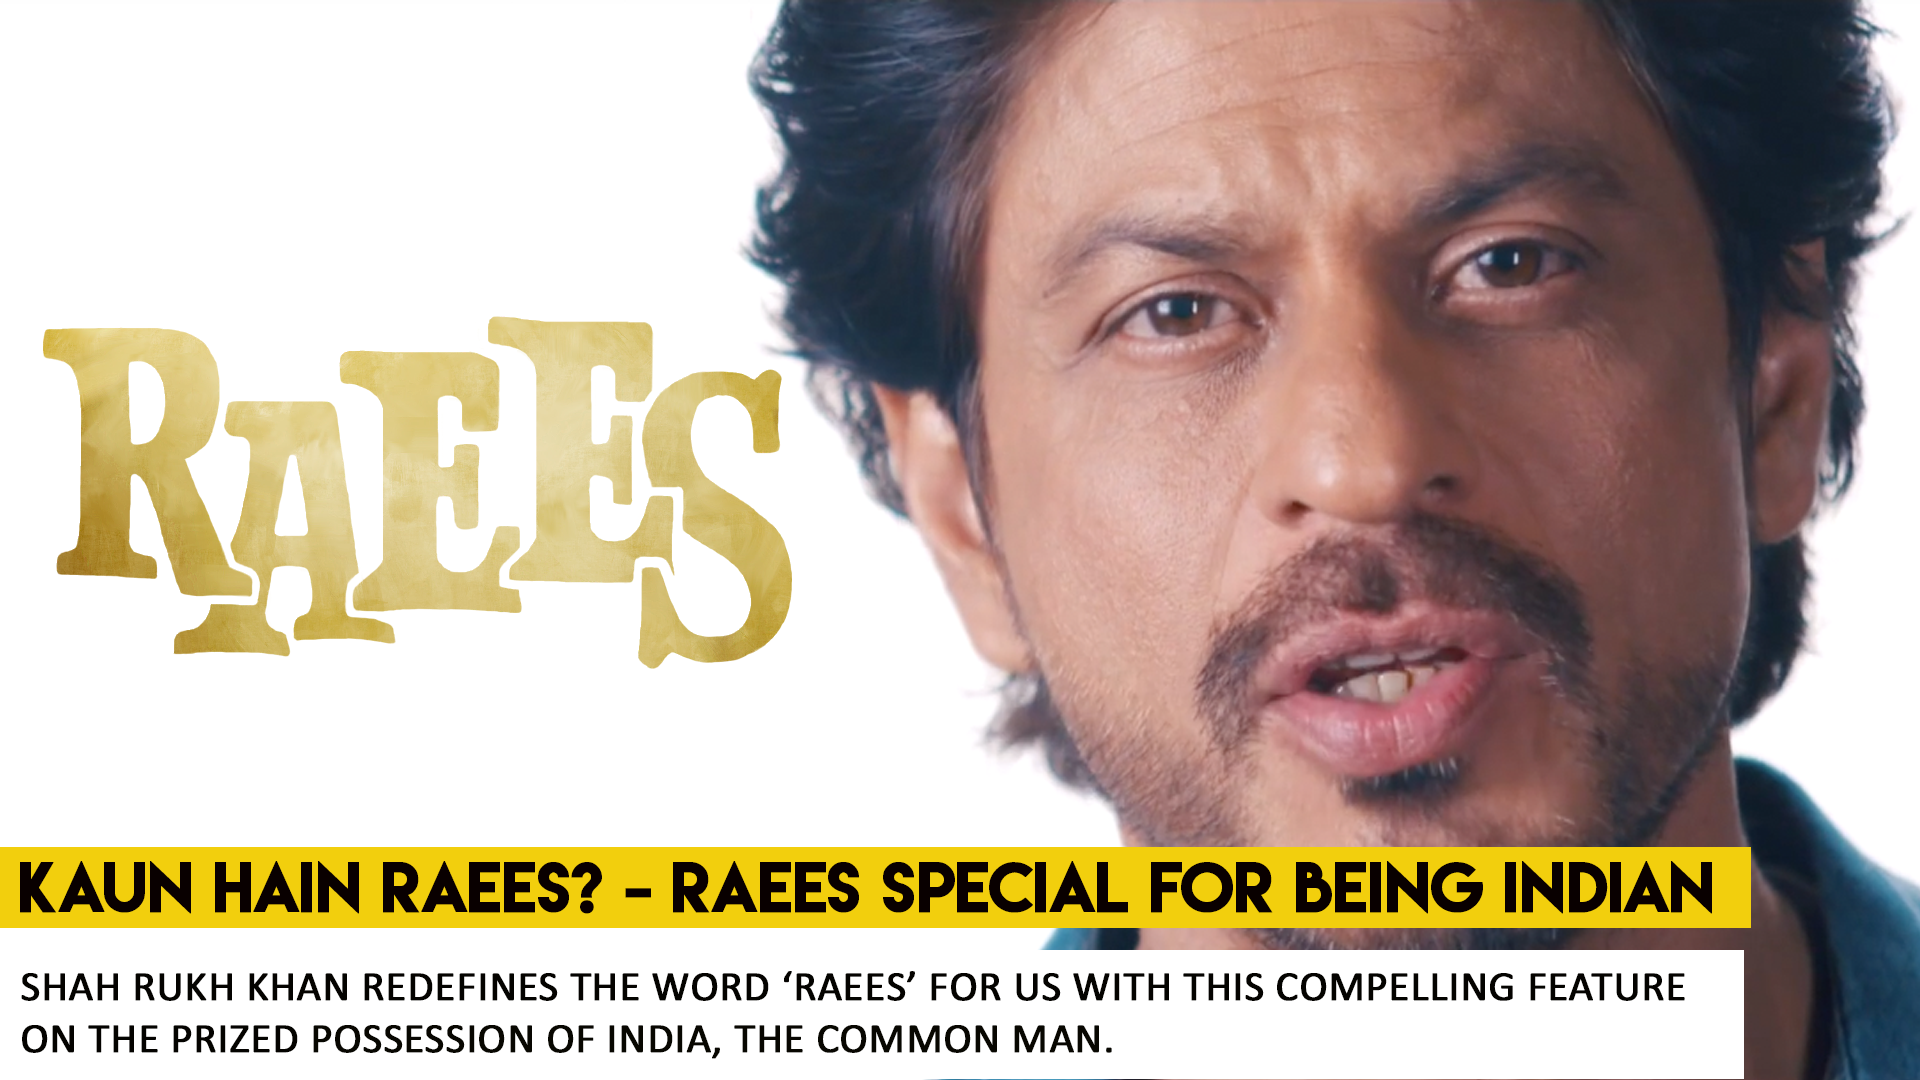 Kaun Hain Raees - What Works